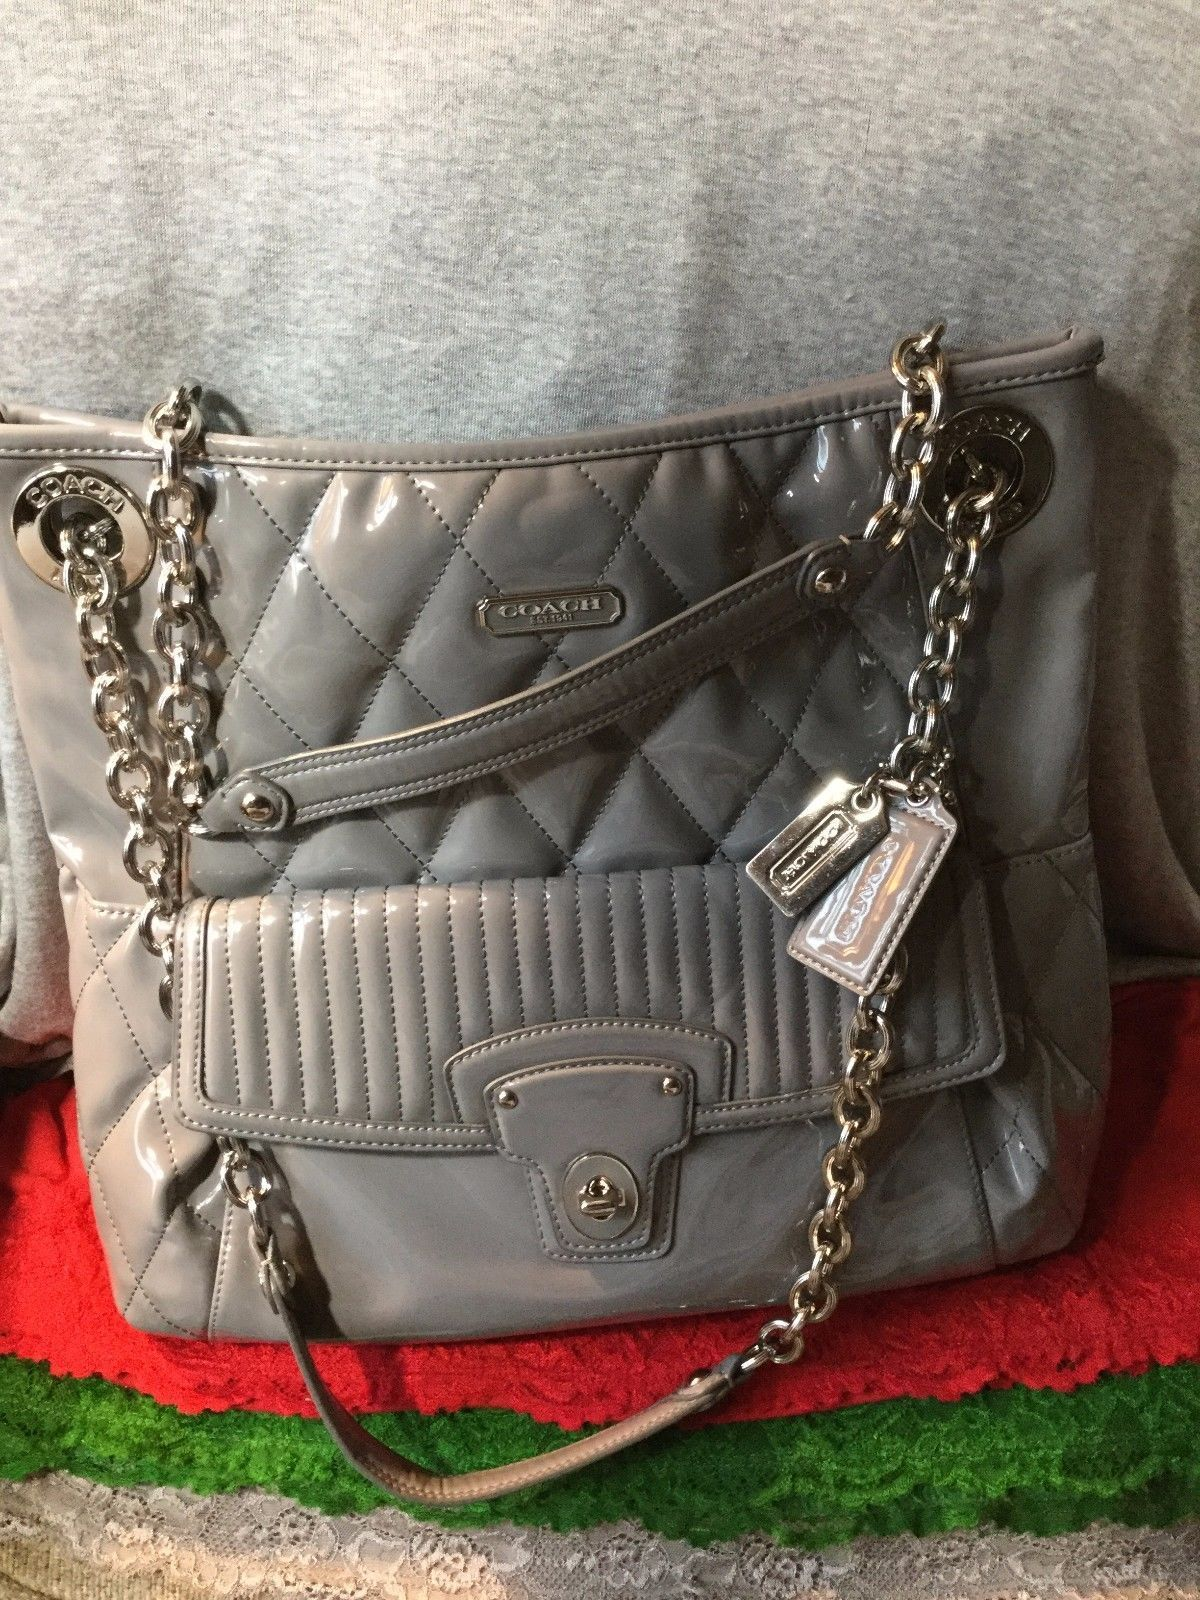 Handbag Coach Grey Patent Leather Chain Quilted Shoulder Bag Tote Snap Hobo   Bonanza  Doris Daily Deals 4a768ce3f0